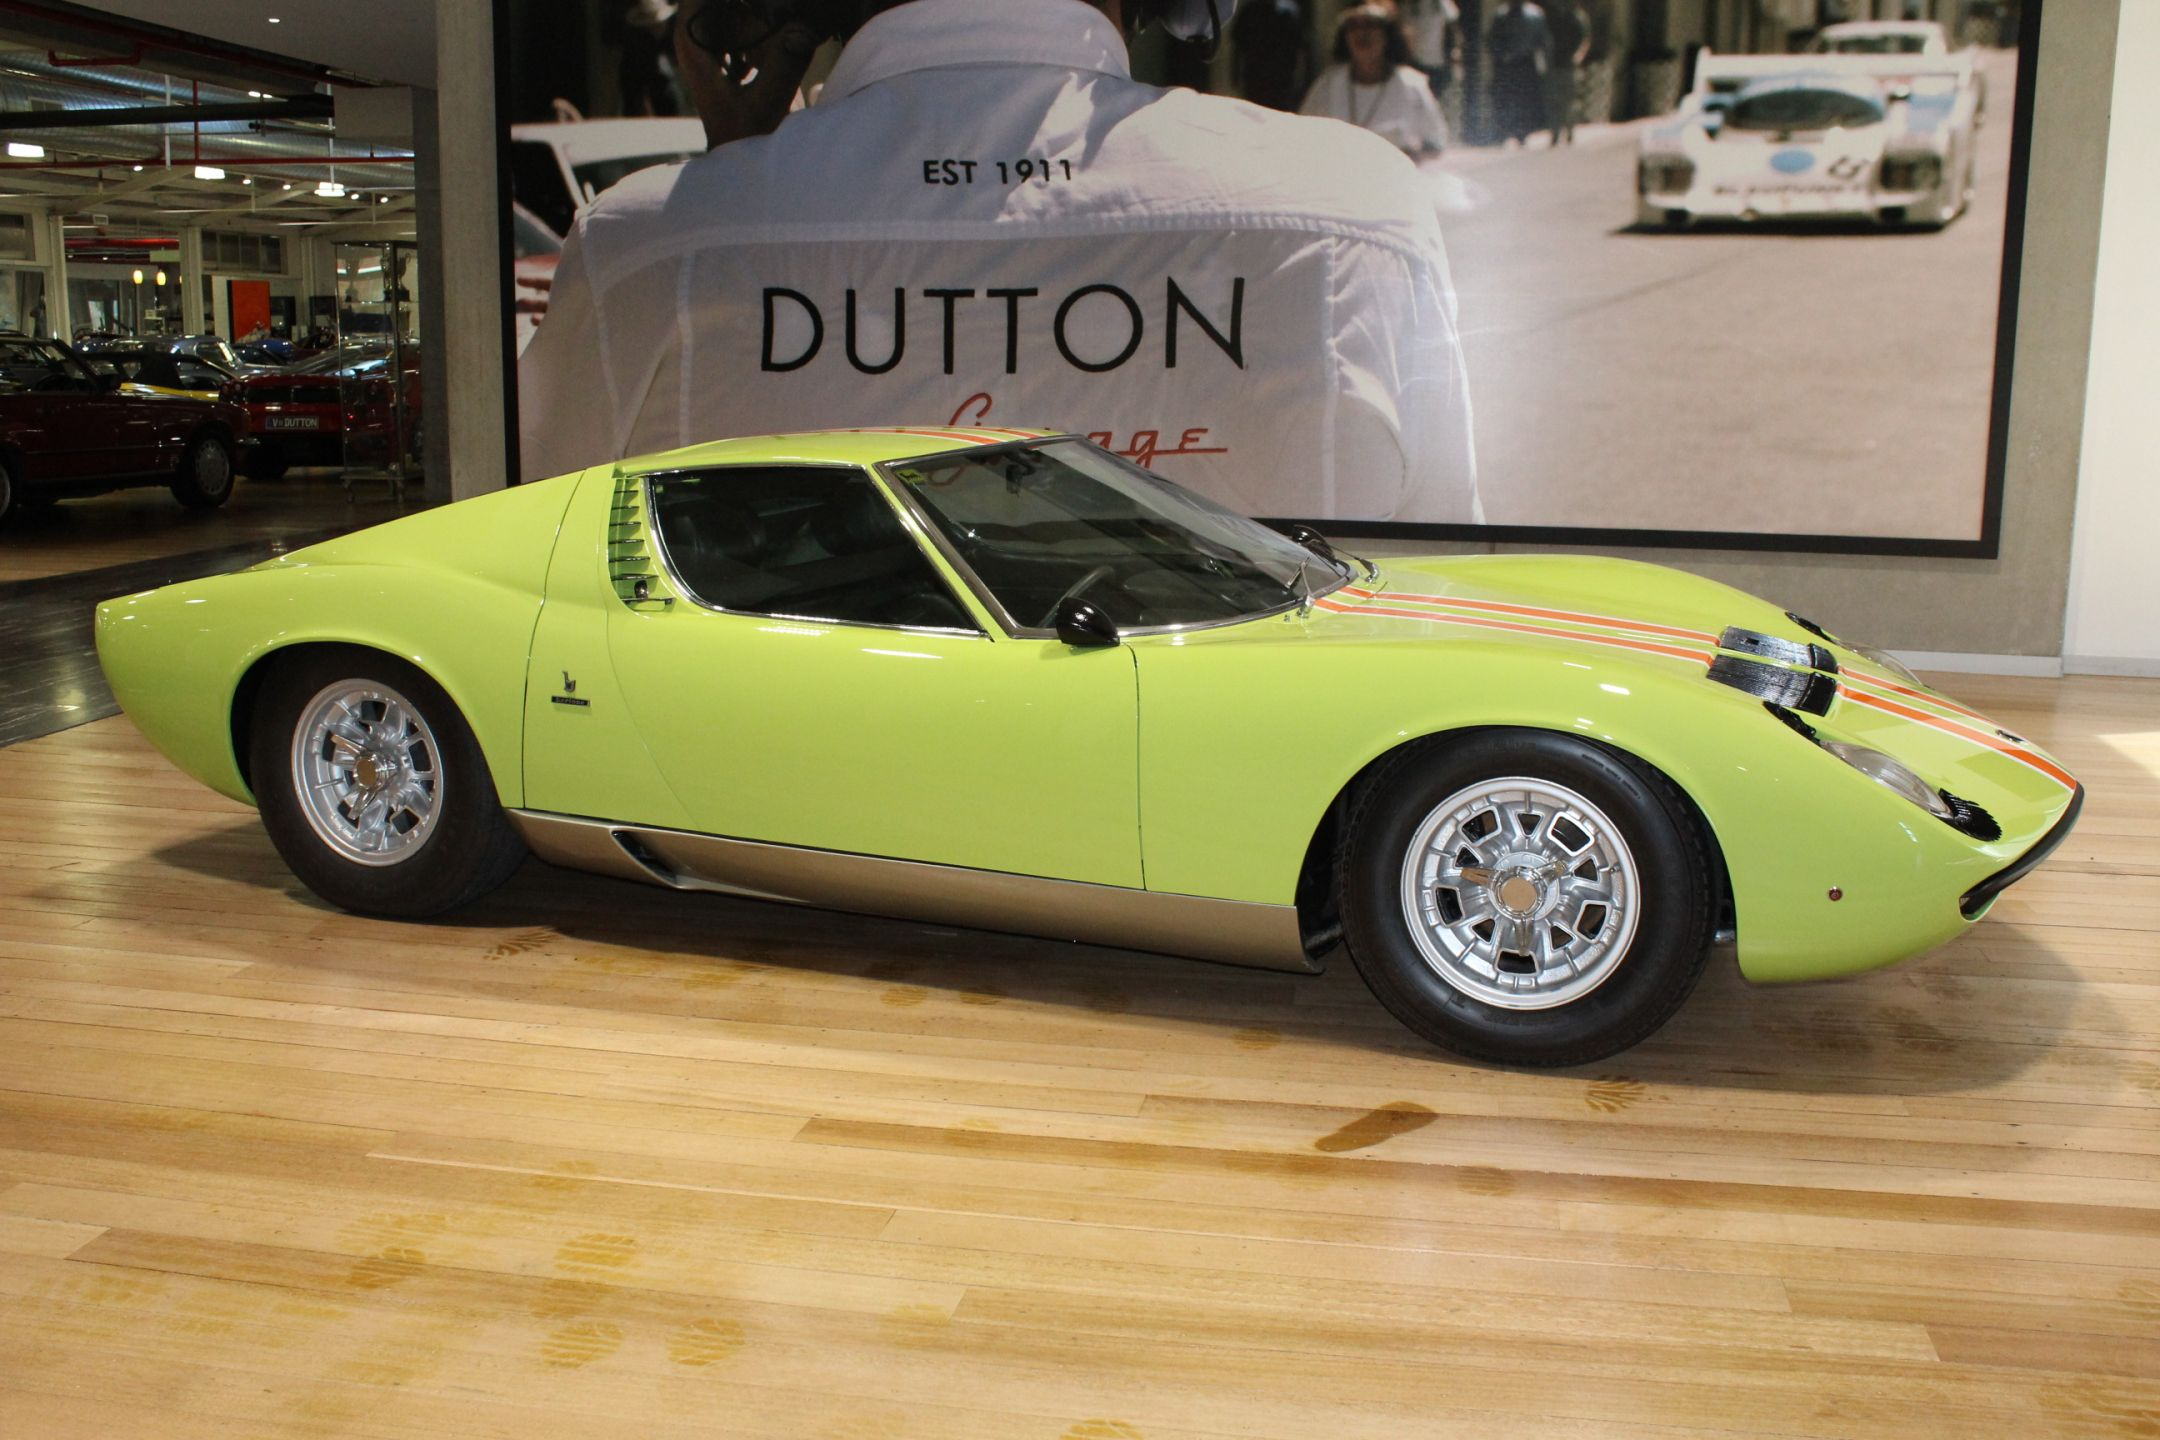 1969 Lamborghini Miura S Twiggy For Sale Duttongarage Com